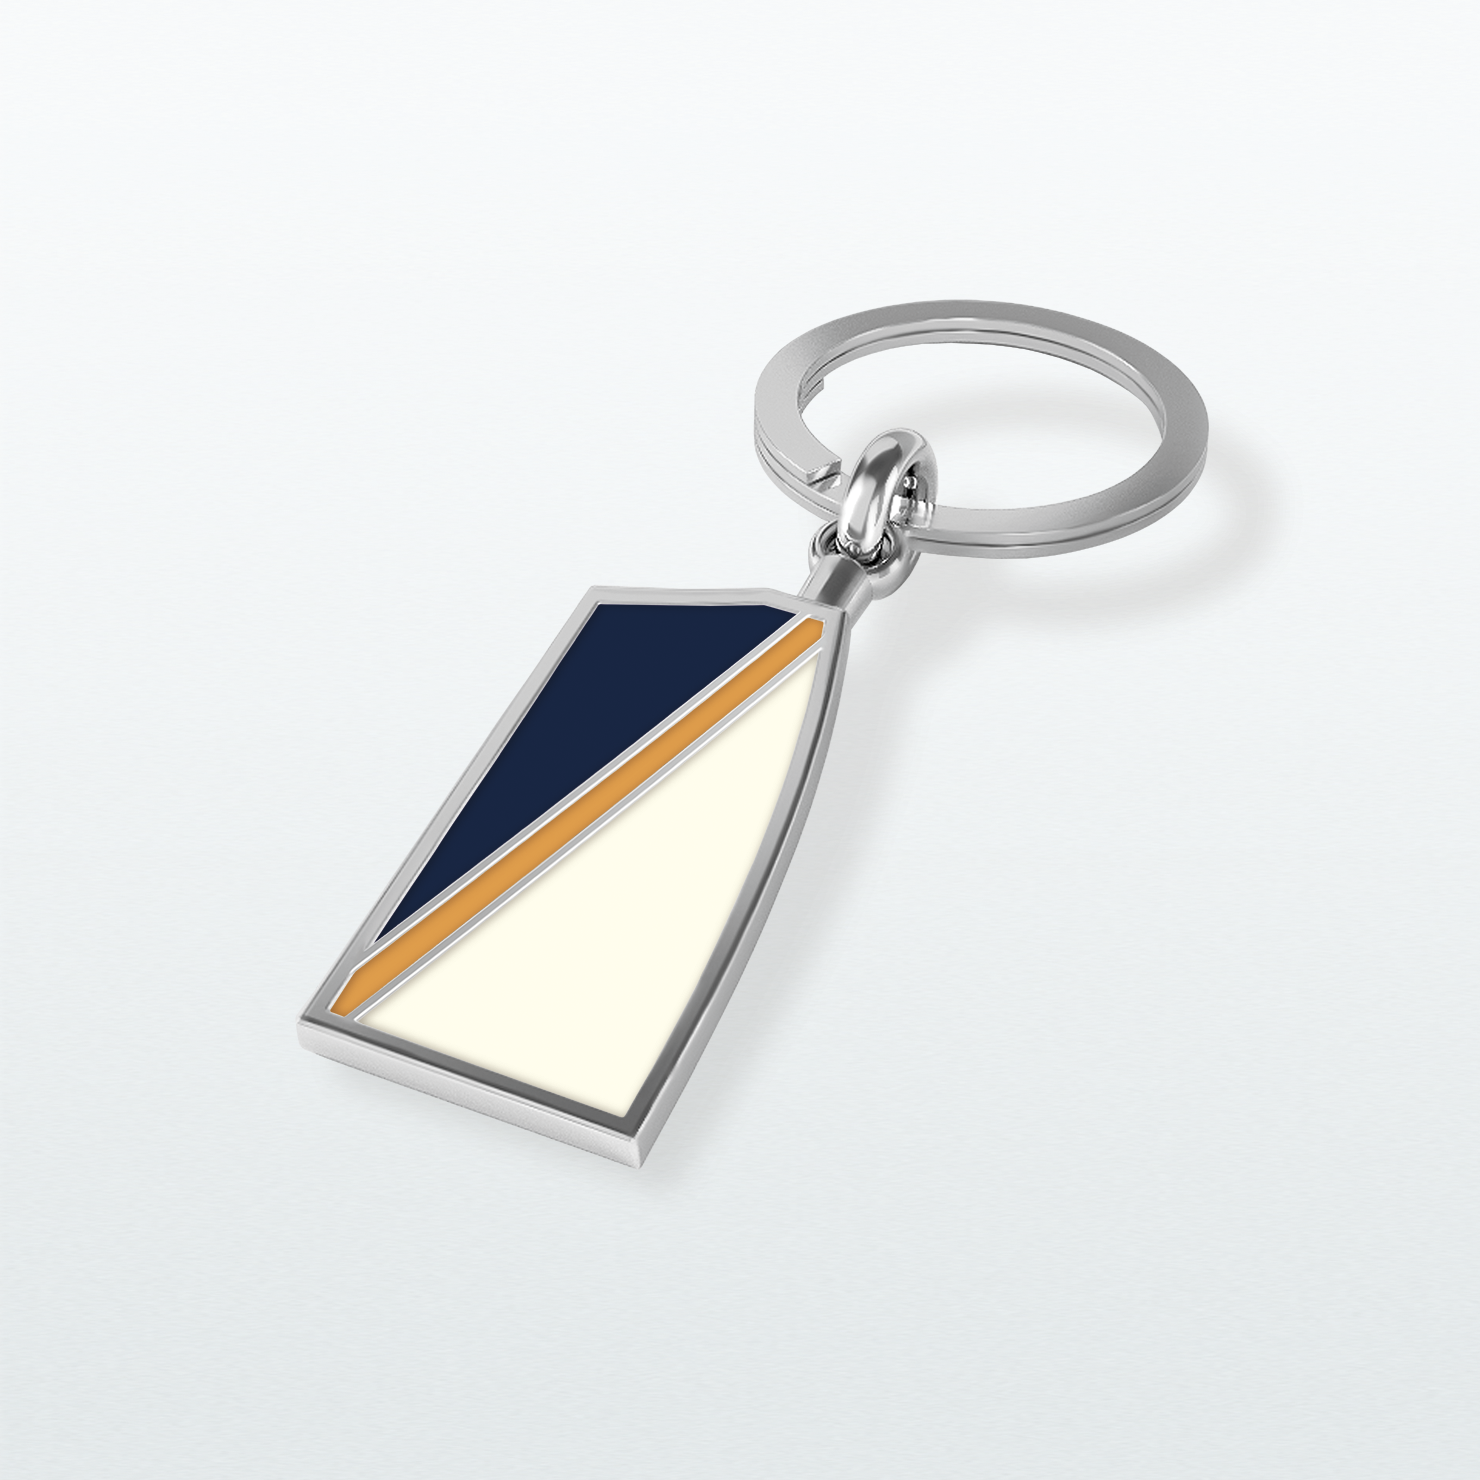 Unionville Key Chain - Strokeside Designs Rowing jewelry- Rowing Gifts Ideas- Rowing Coach Gifts